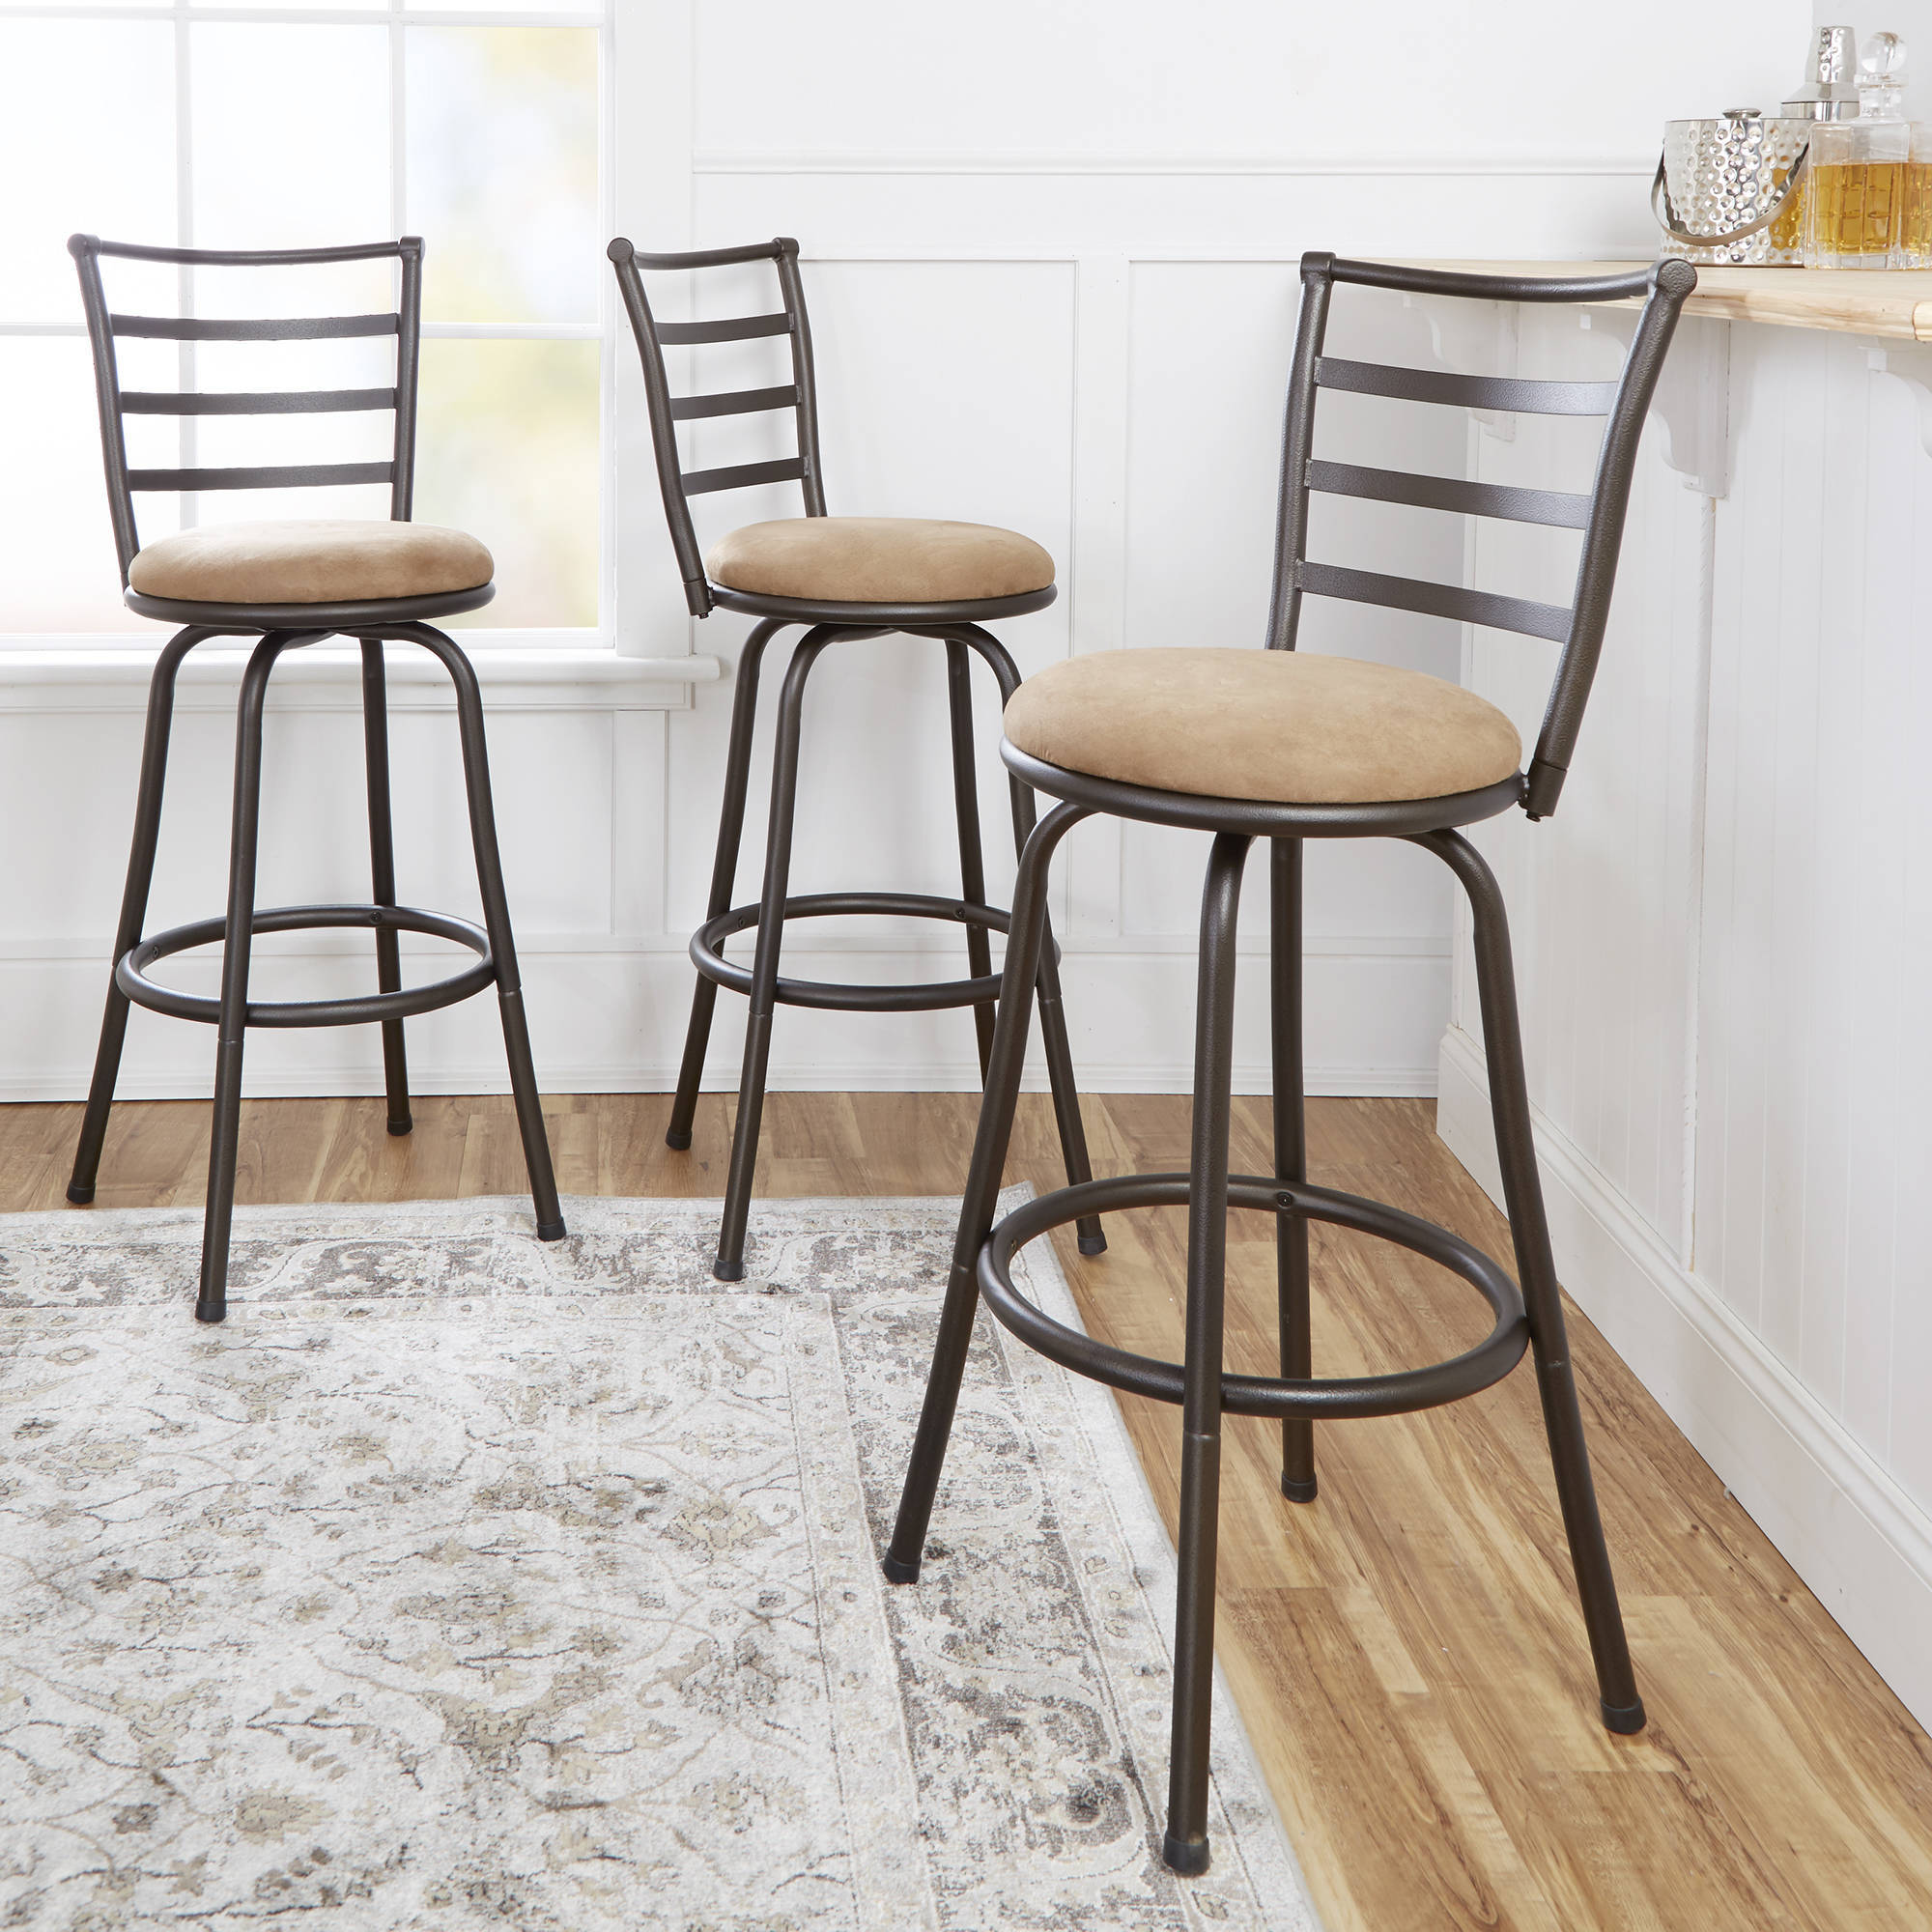 mainstays swivel barstool hammered bronze finish set of 3 multiple